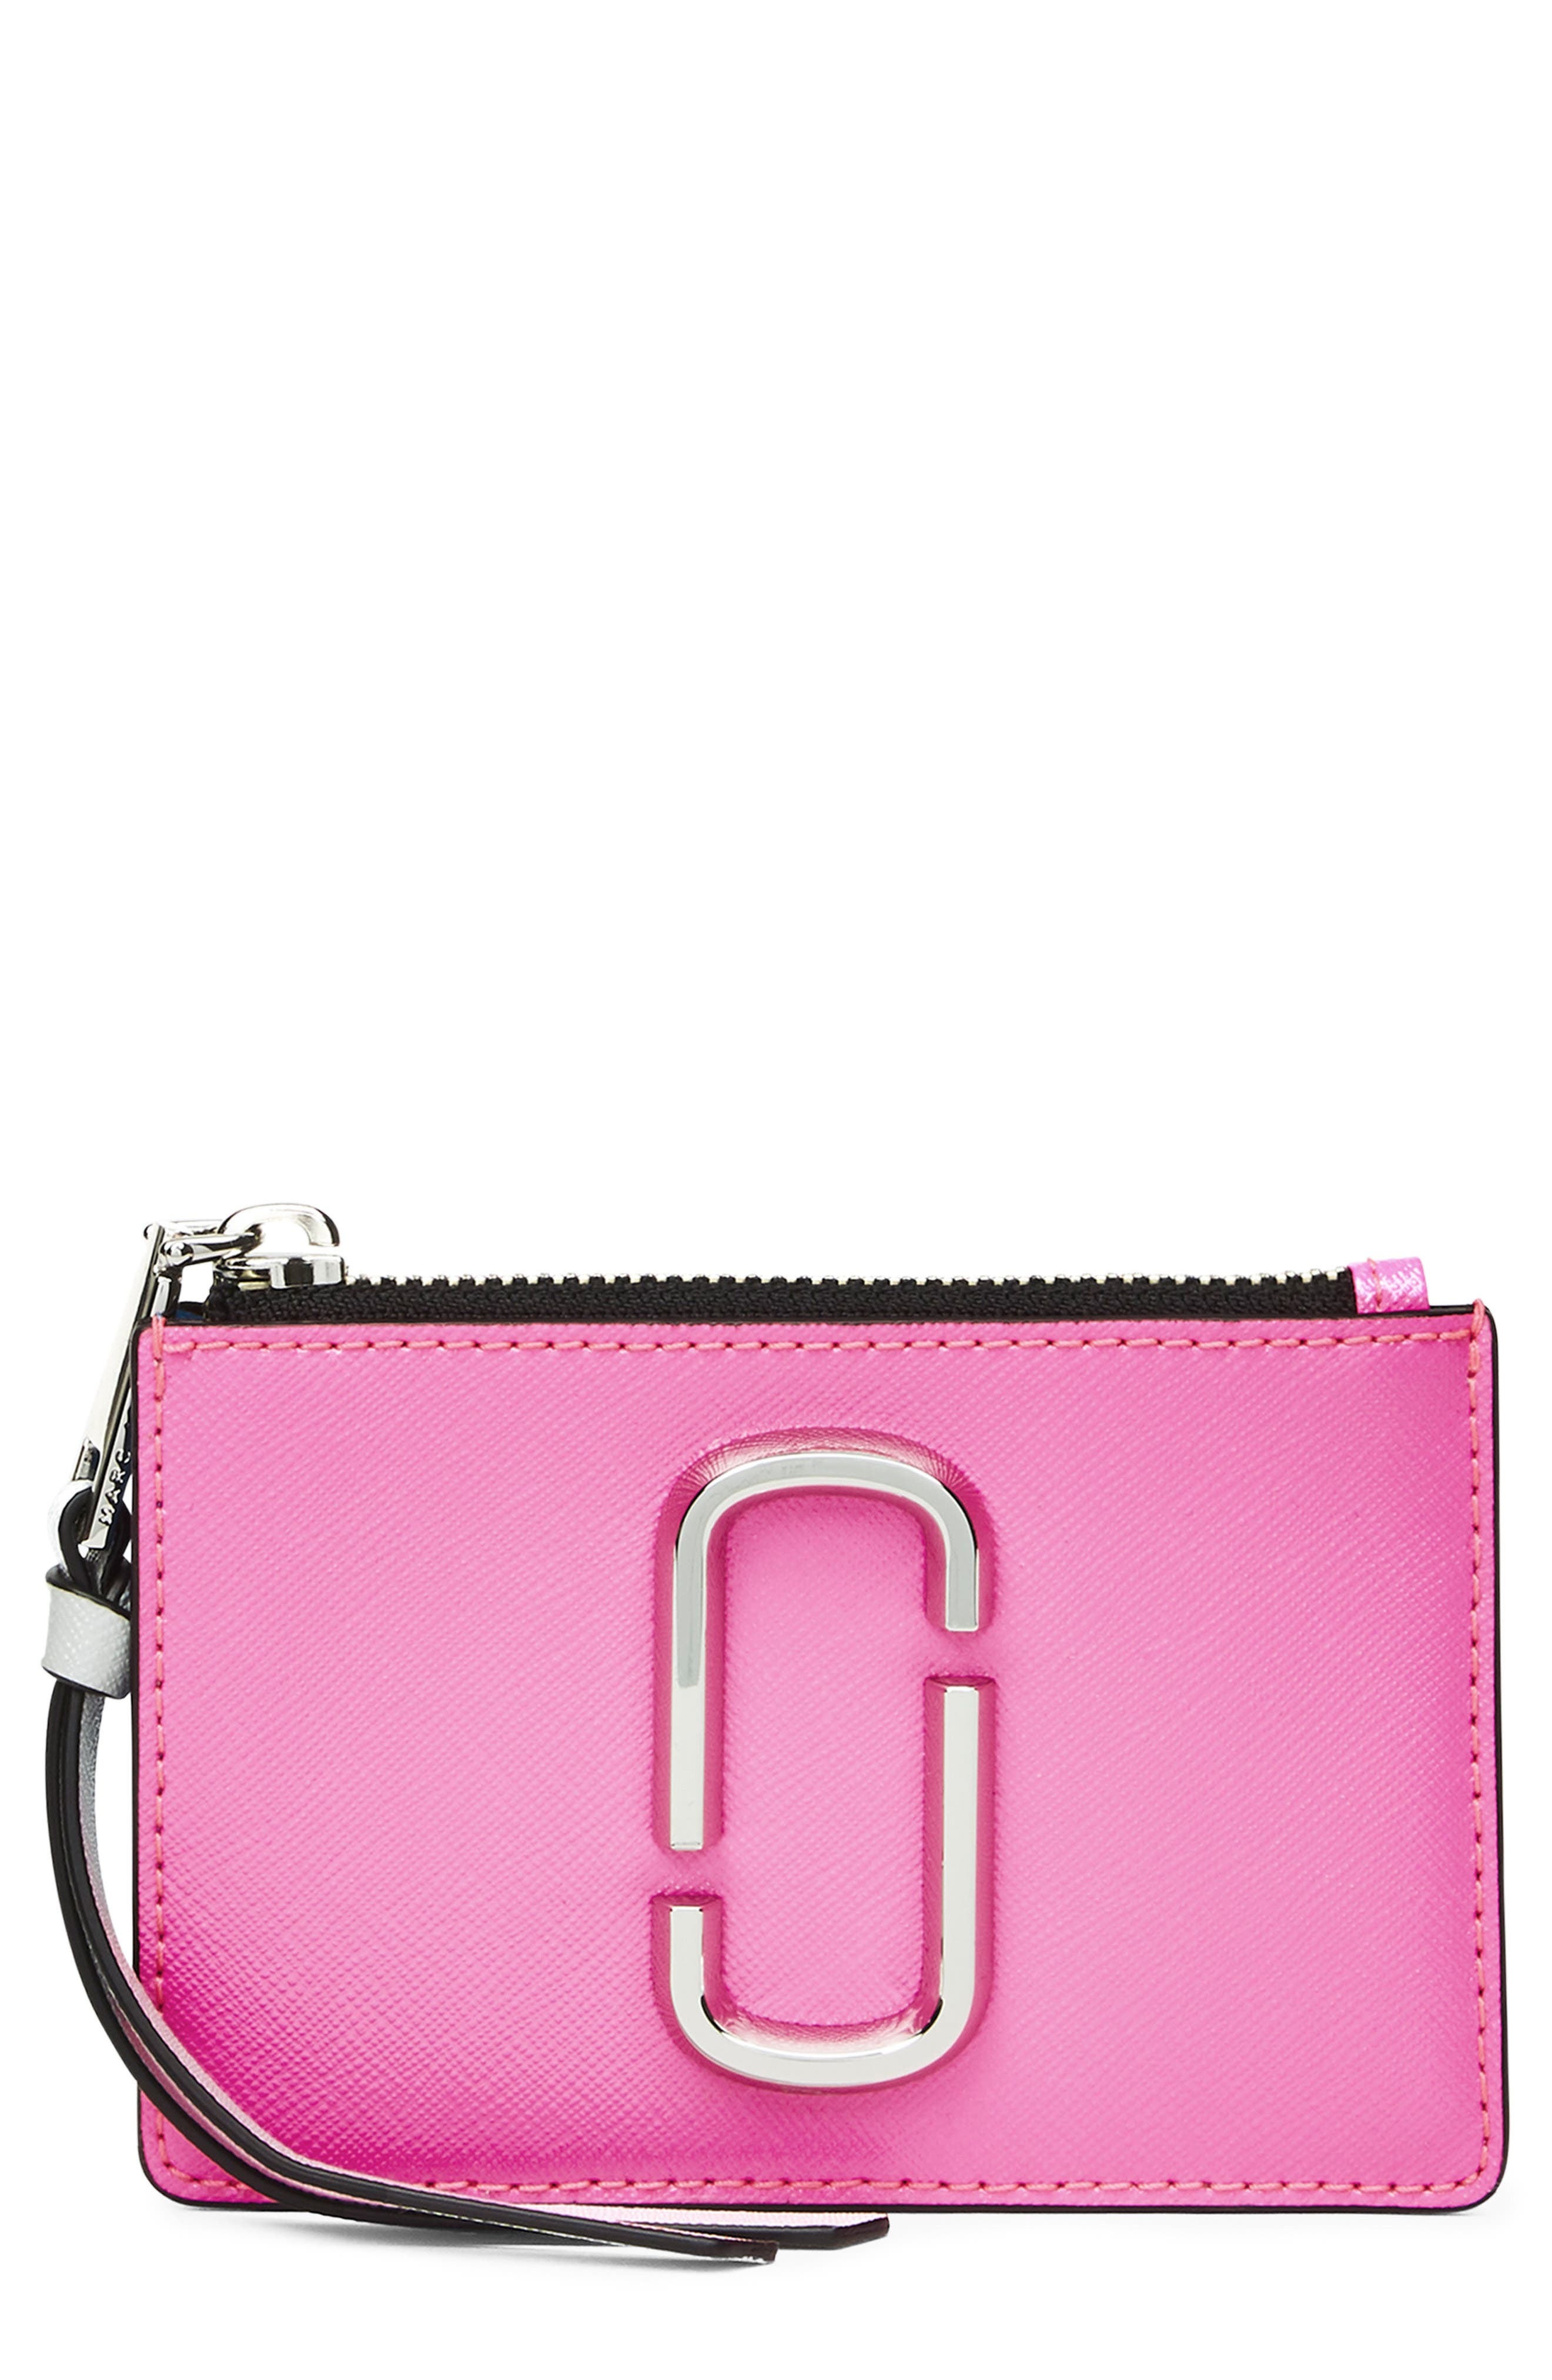 Snapshot Small Leather Wallet,                             Main thumbnail 1, color,                             BRIGHT PINK MULTI